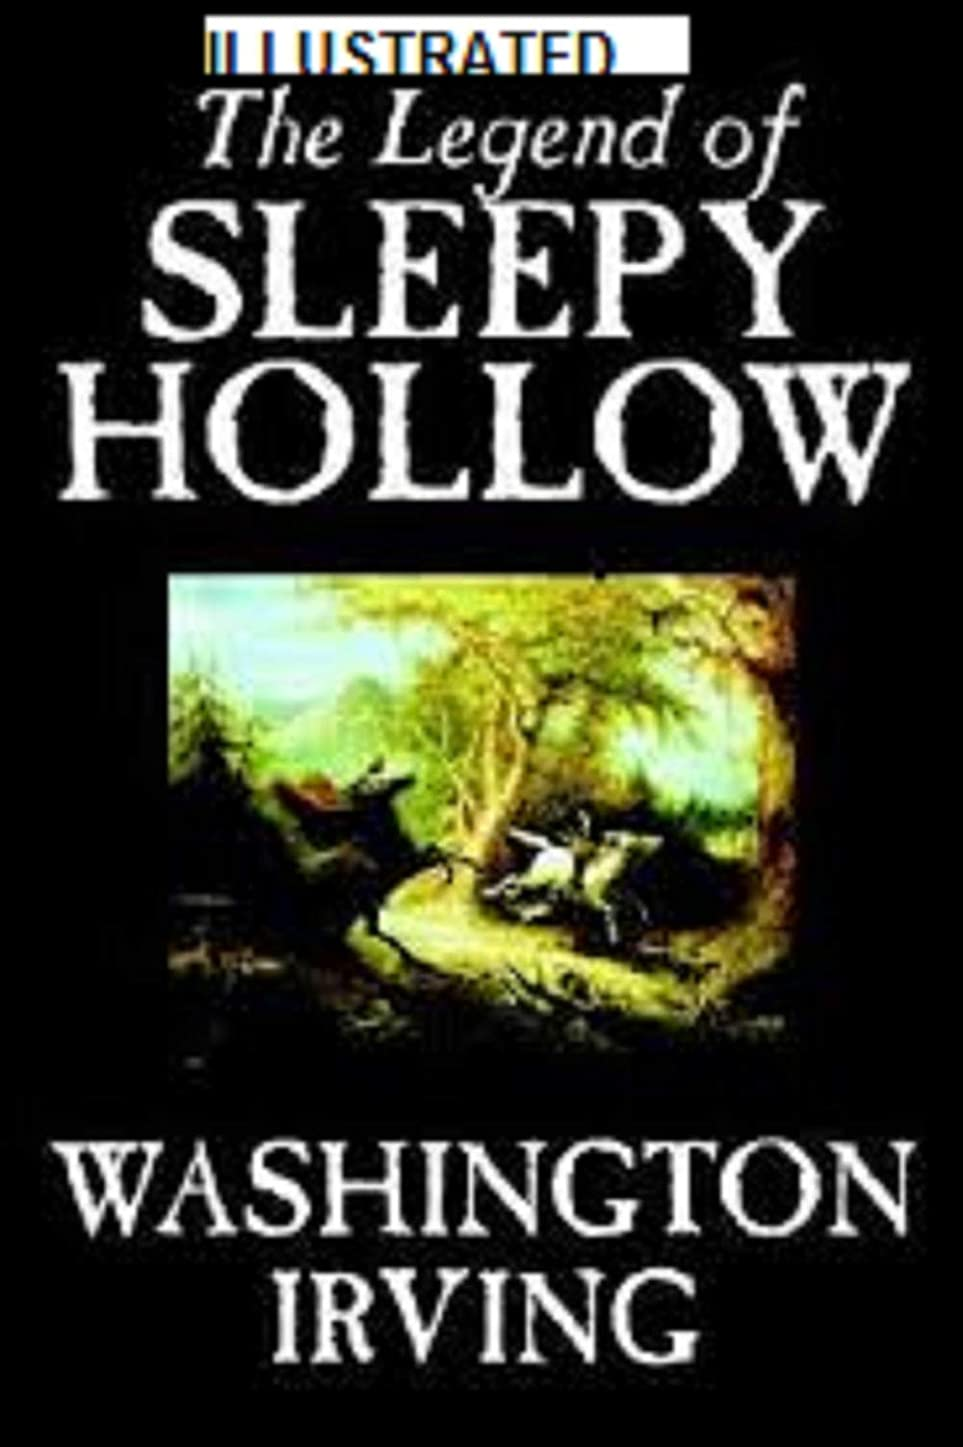 放棄された灰厚いThe Legend of Sleepy Hollow Illustrated (English Edition)